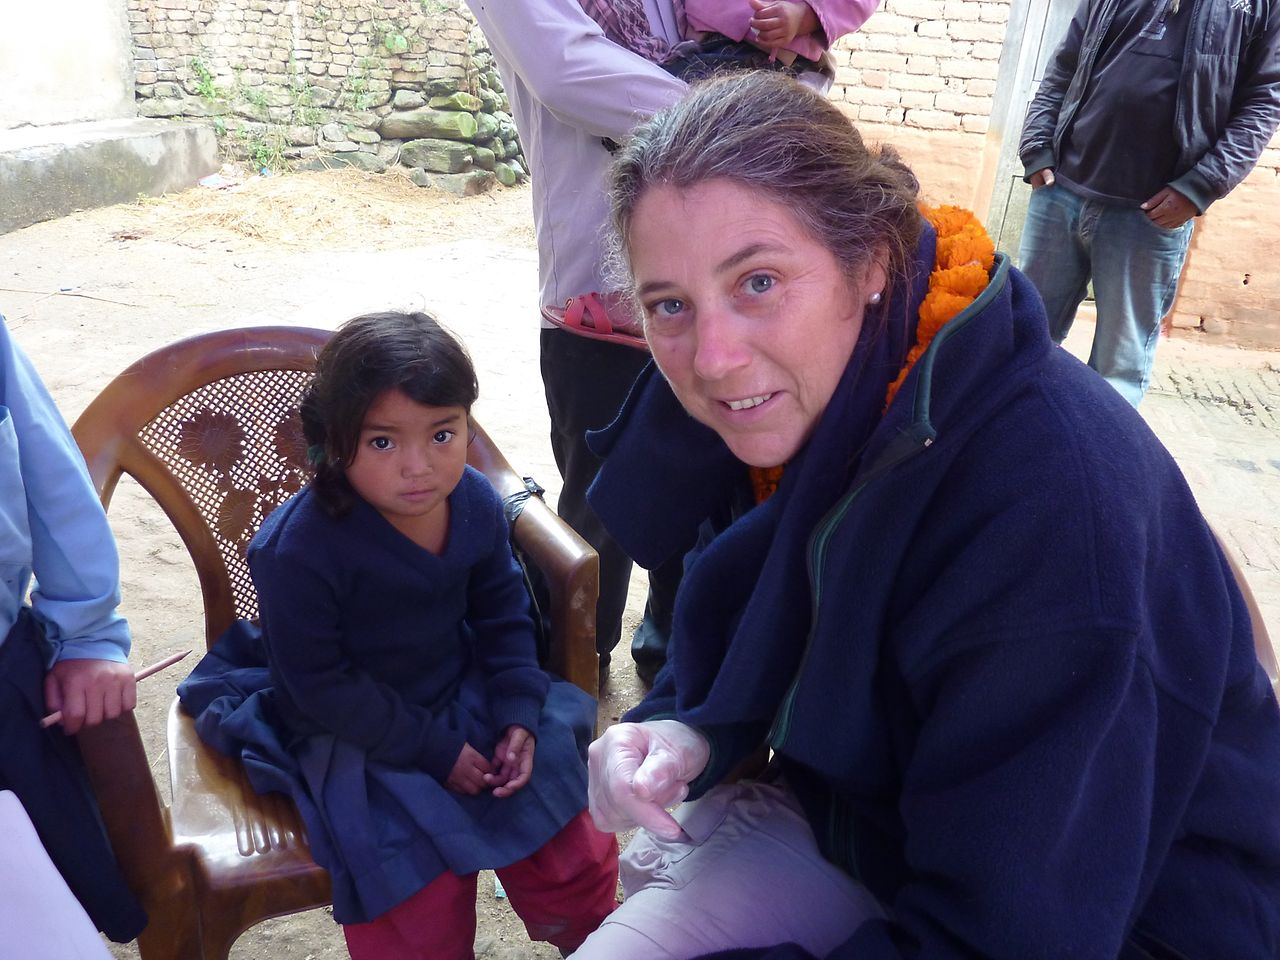 Susanne Volkmann and her team have been able to help over 10,000 children, from newborns to teenagers.